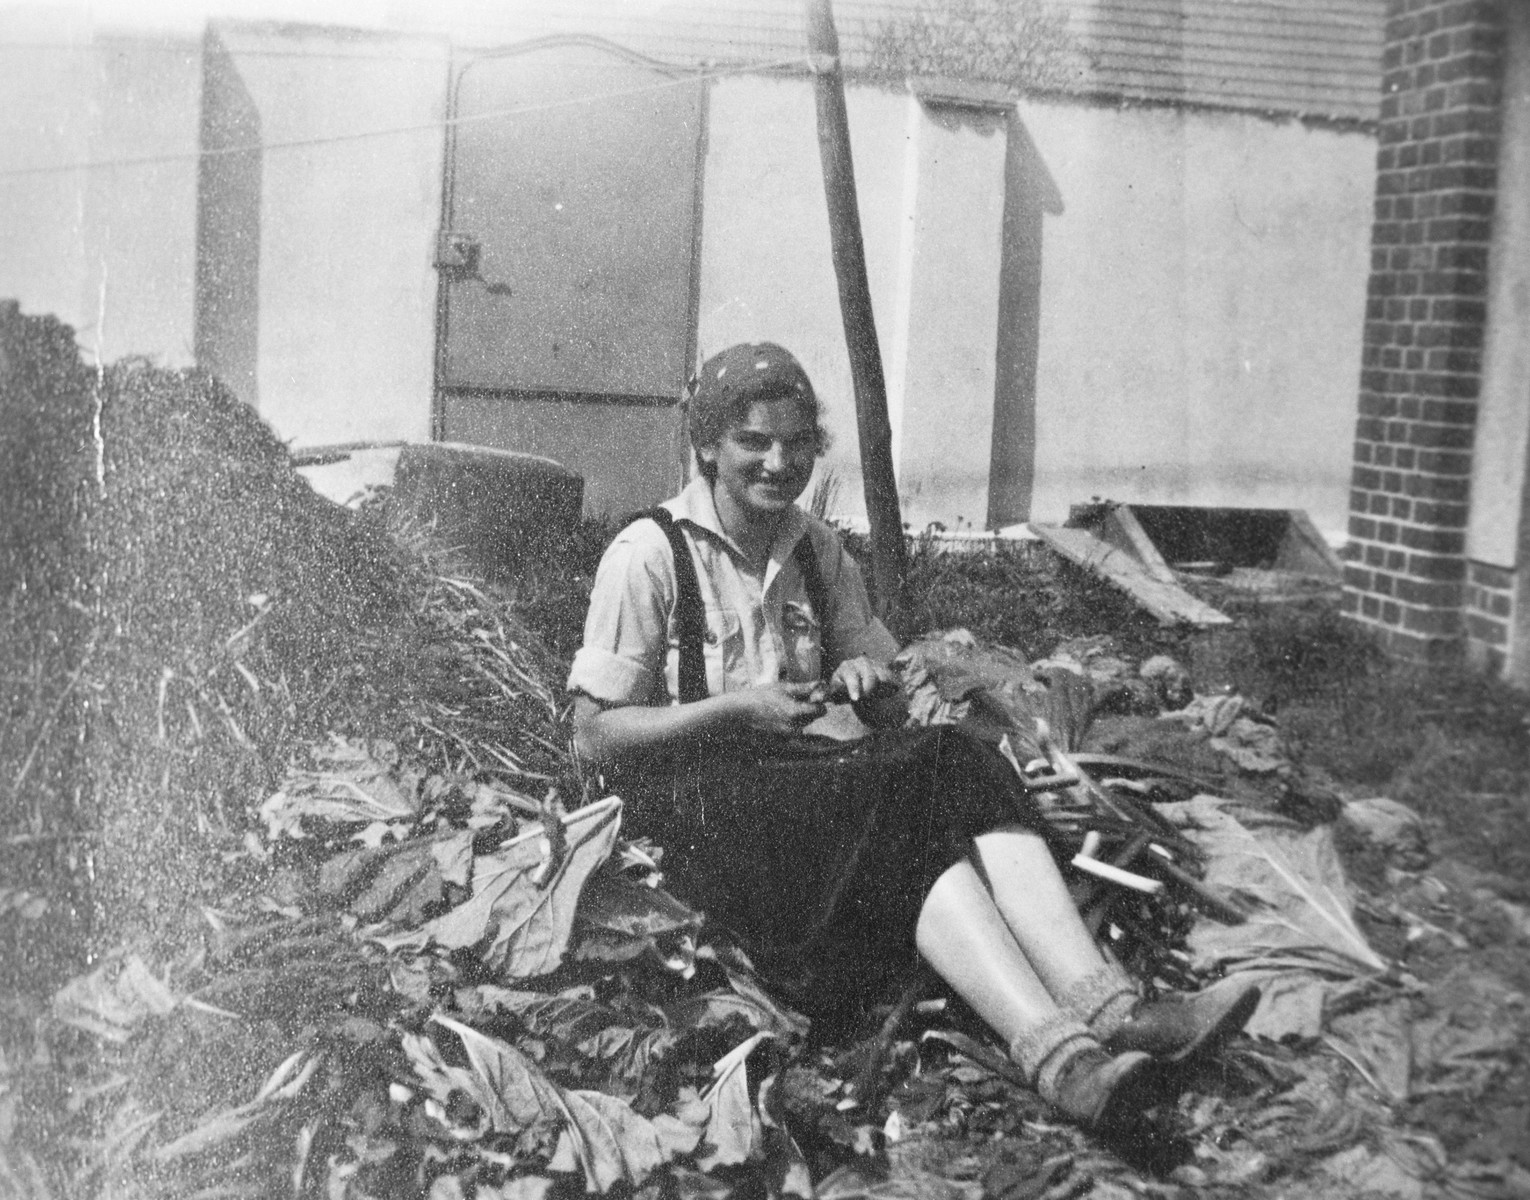 A young Jewish girl attending a vocational training in the Gross Breesen agricultural center cuts and cleans rhubarb while sitting outside.   Pictured is Marianne Clara Schueler (1916-1974), originally of Breslau, who later immigrated to the United States.